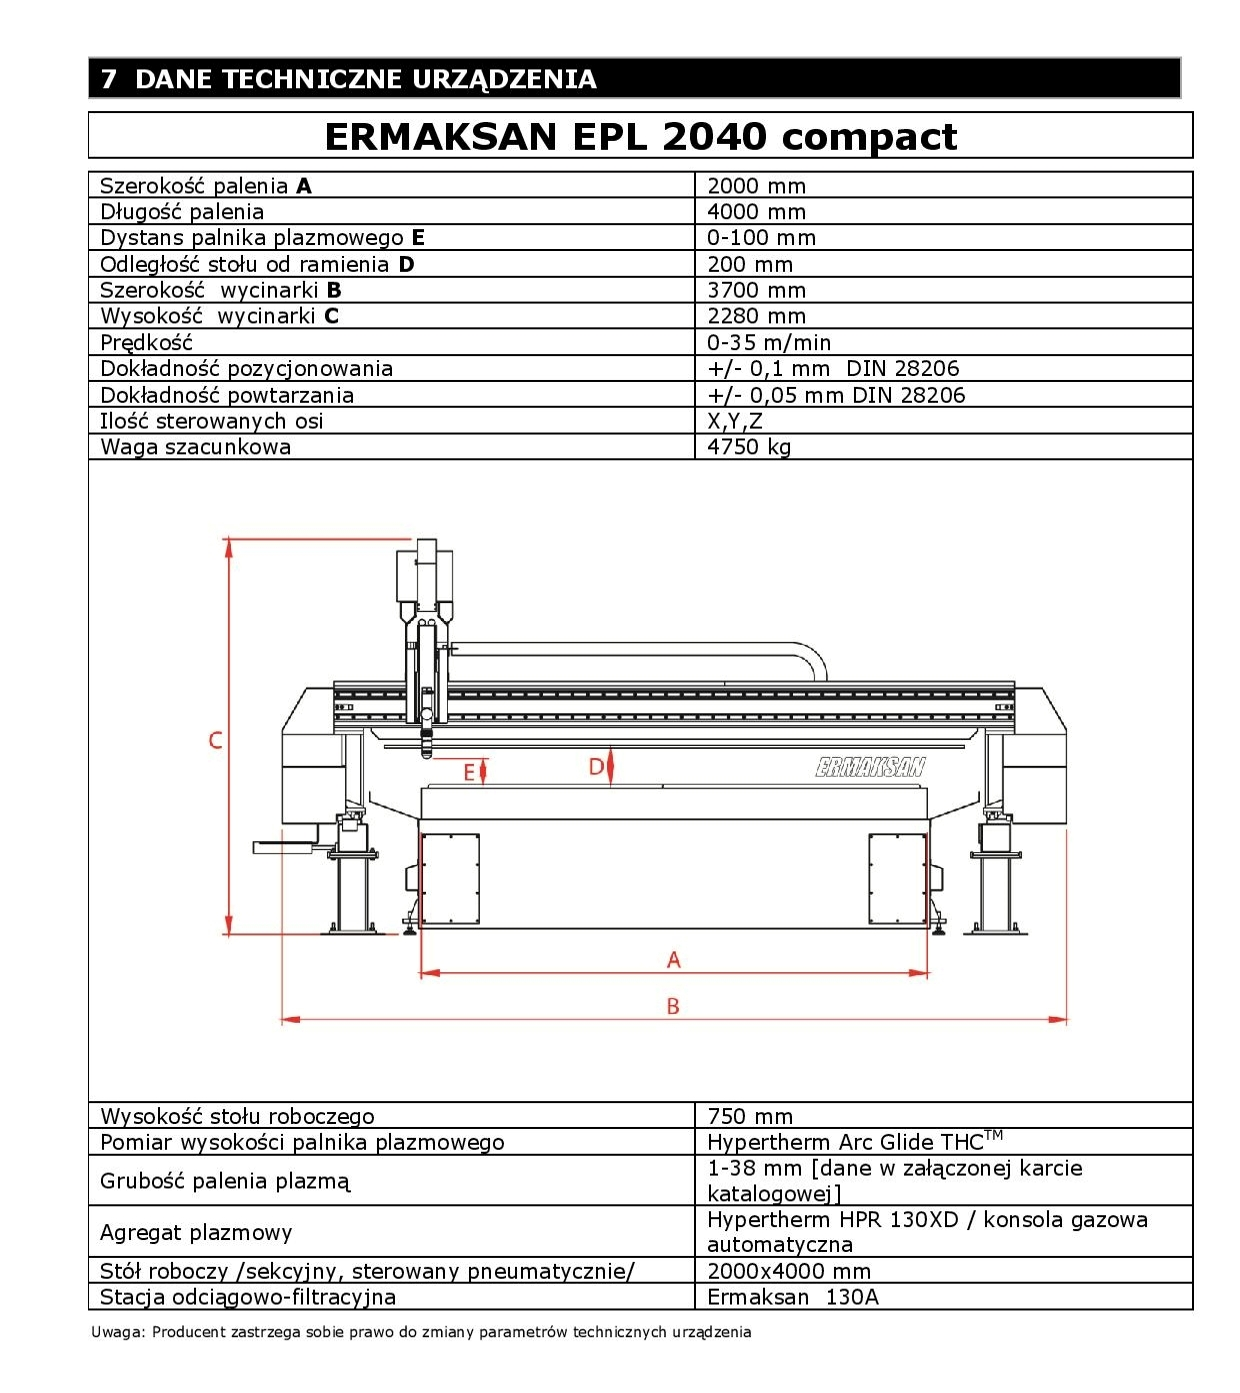 MEVIUS_EPL2040compact_HPR130-page-006